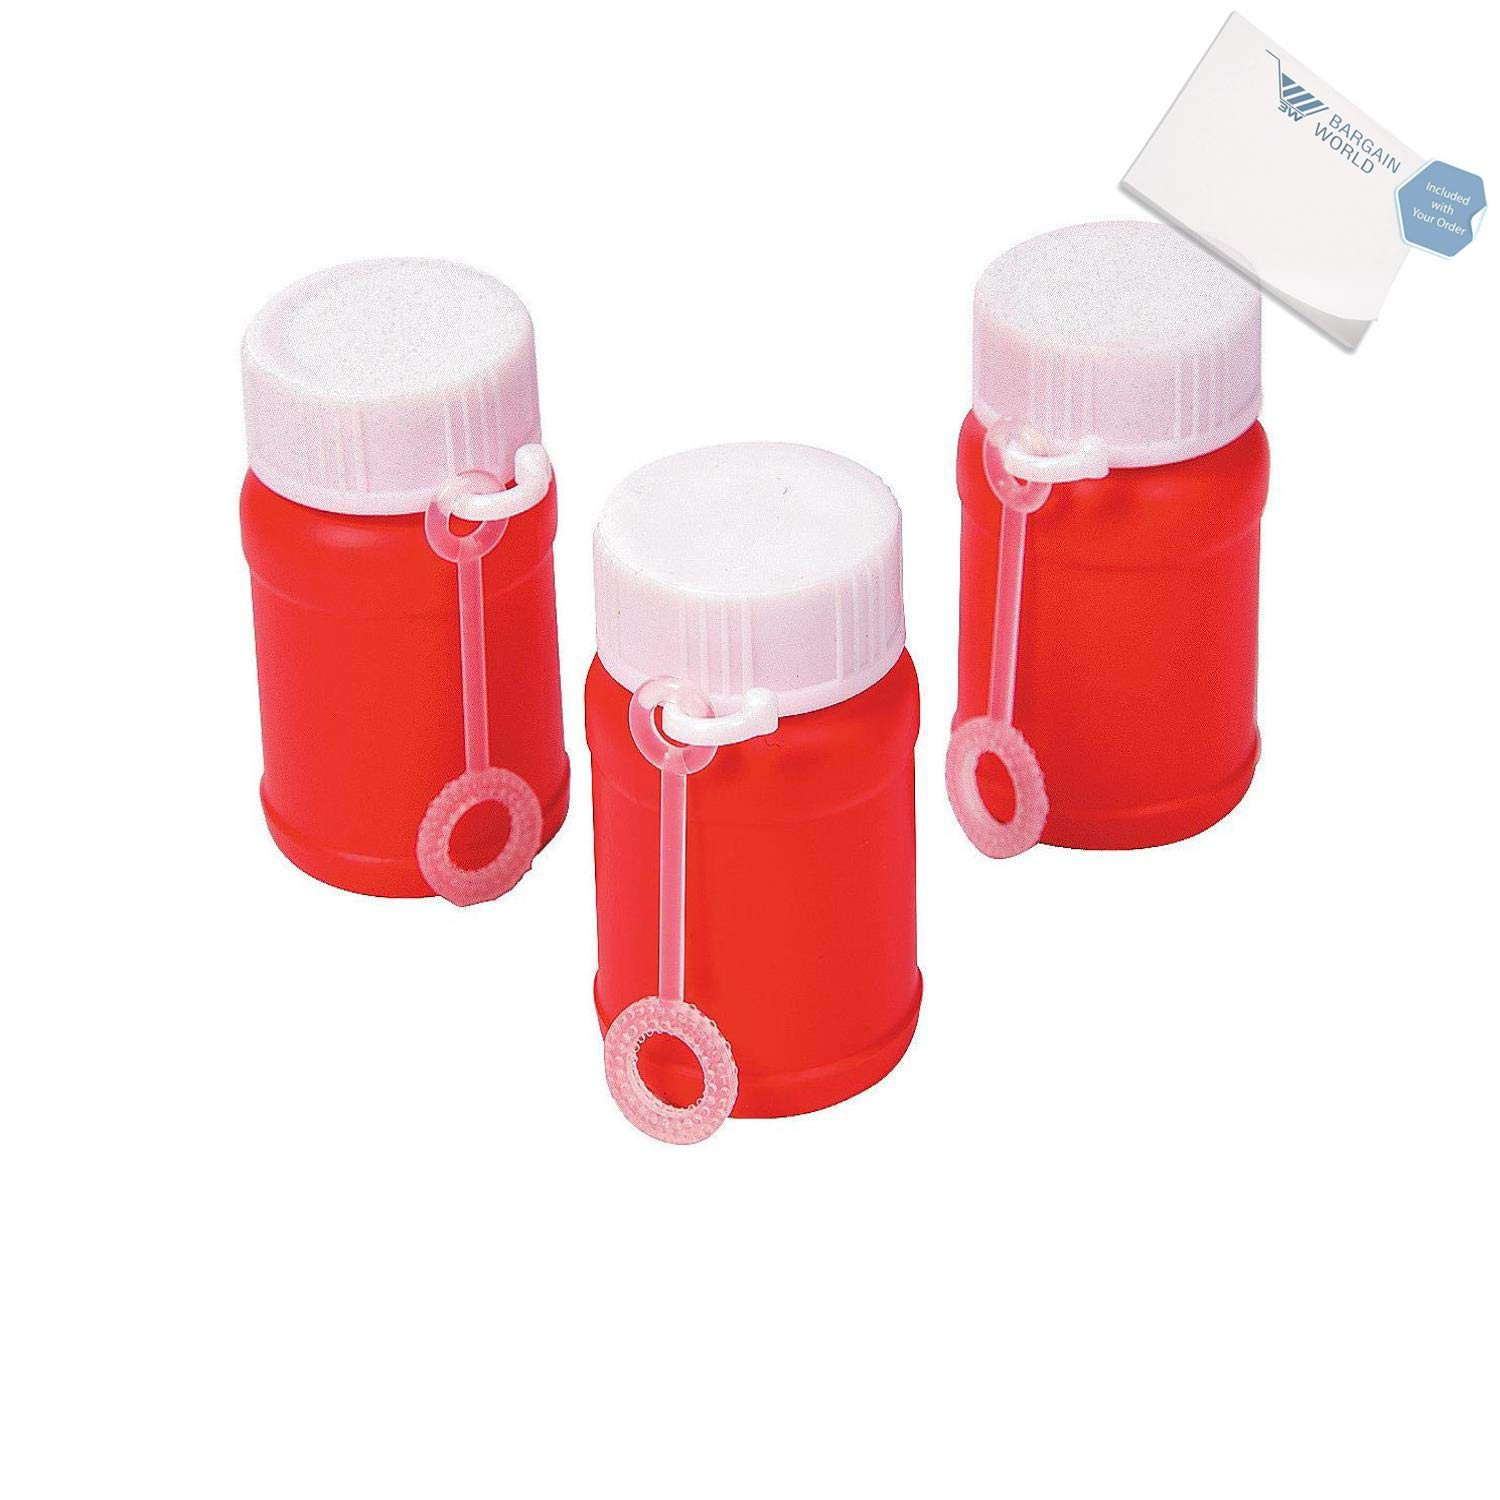 Bargain World Plastic Red Mini Bubble Bottles (With Sticky Notes)